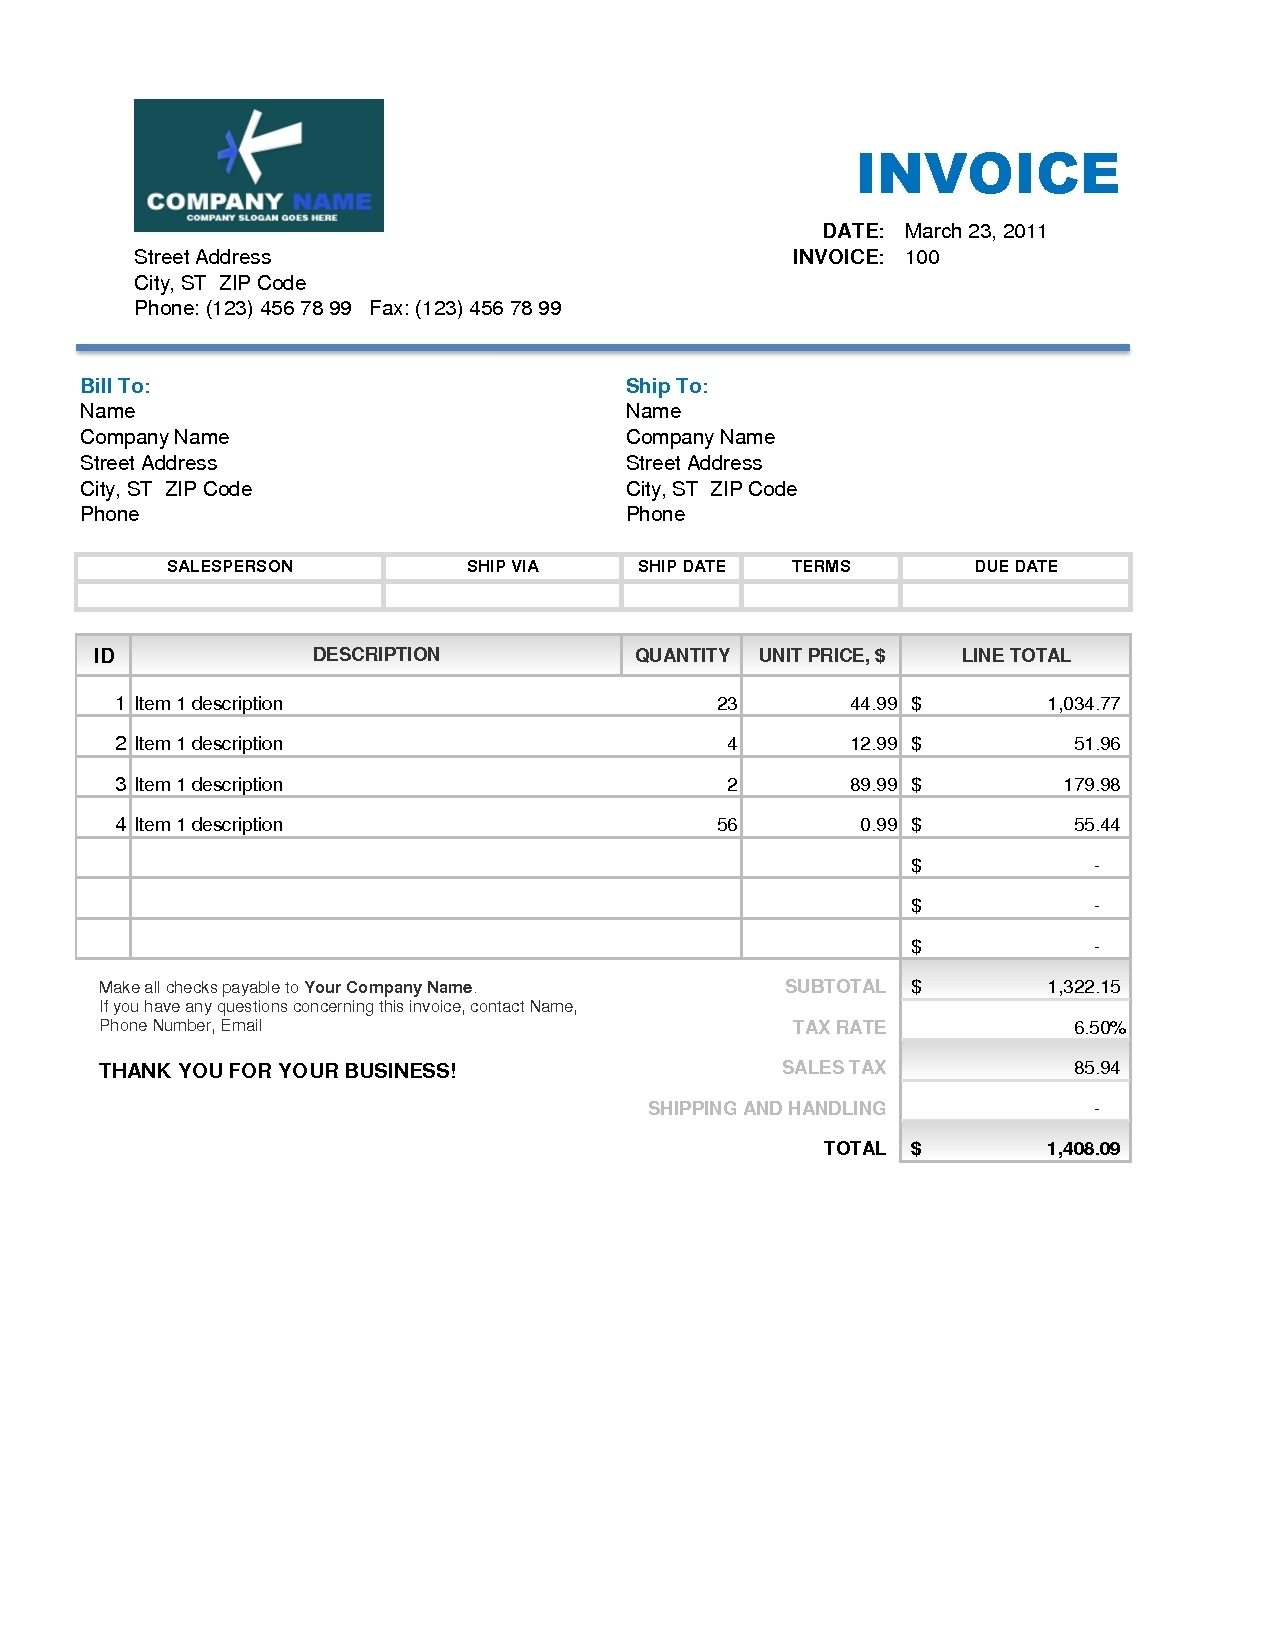 sample roofing invoice doc 600730 roofing invoice template 4 sample on excel free mdxar 1275 X 1650